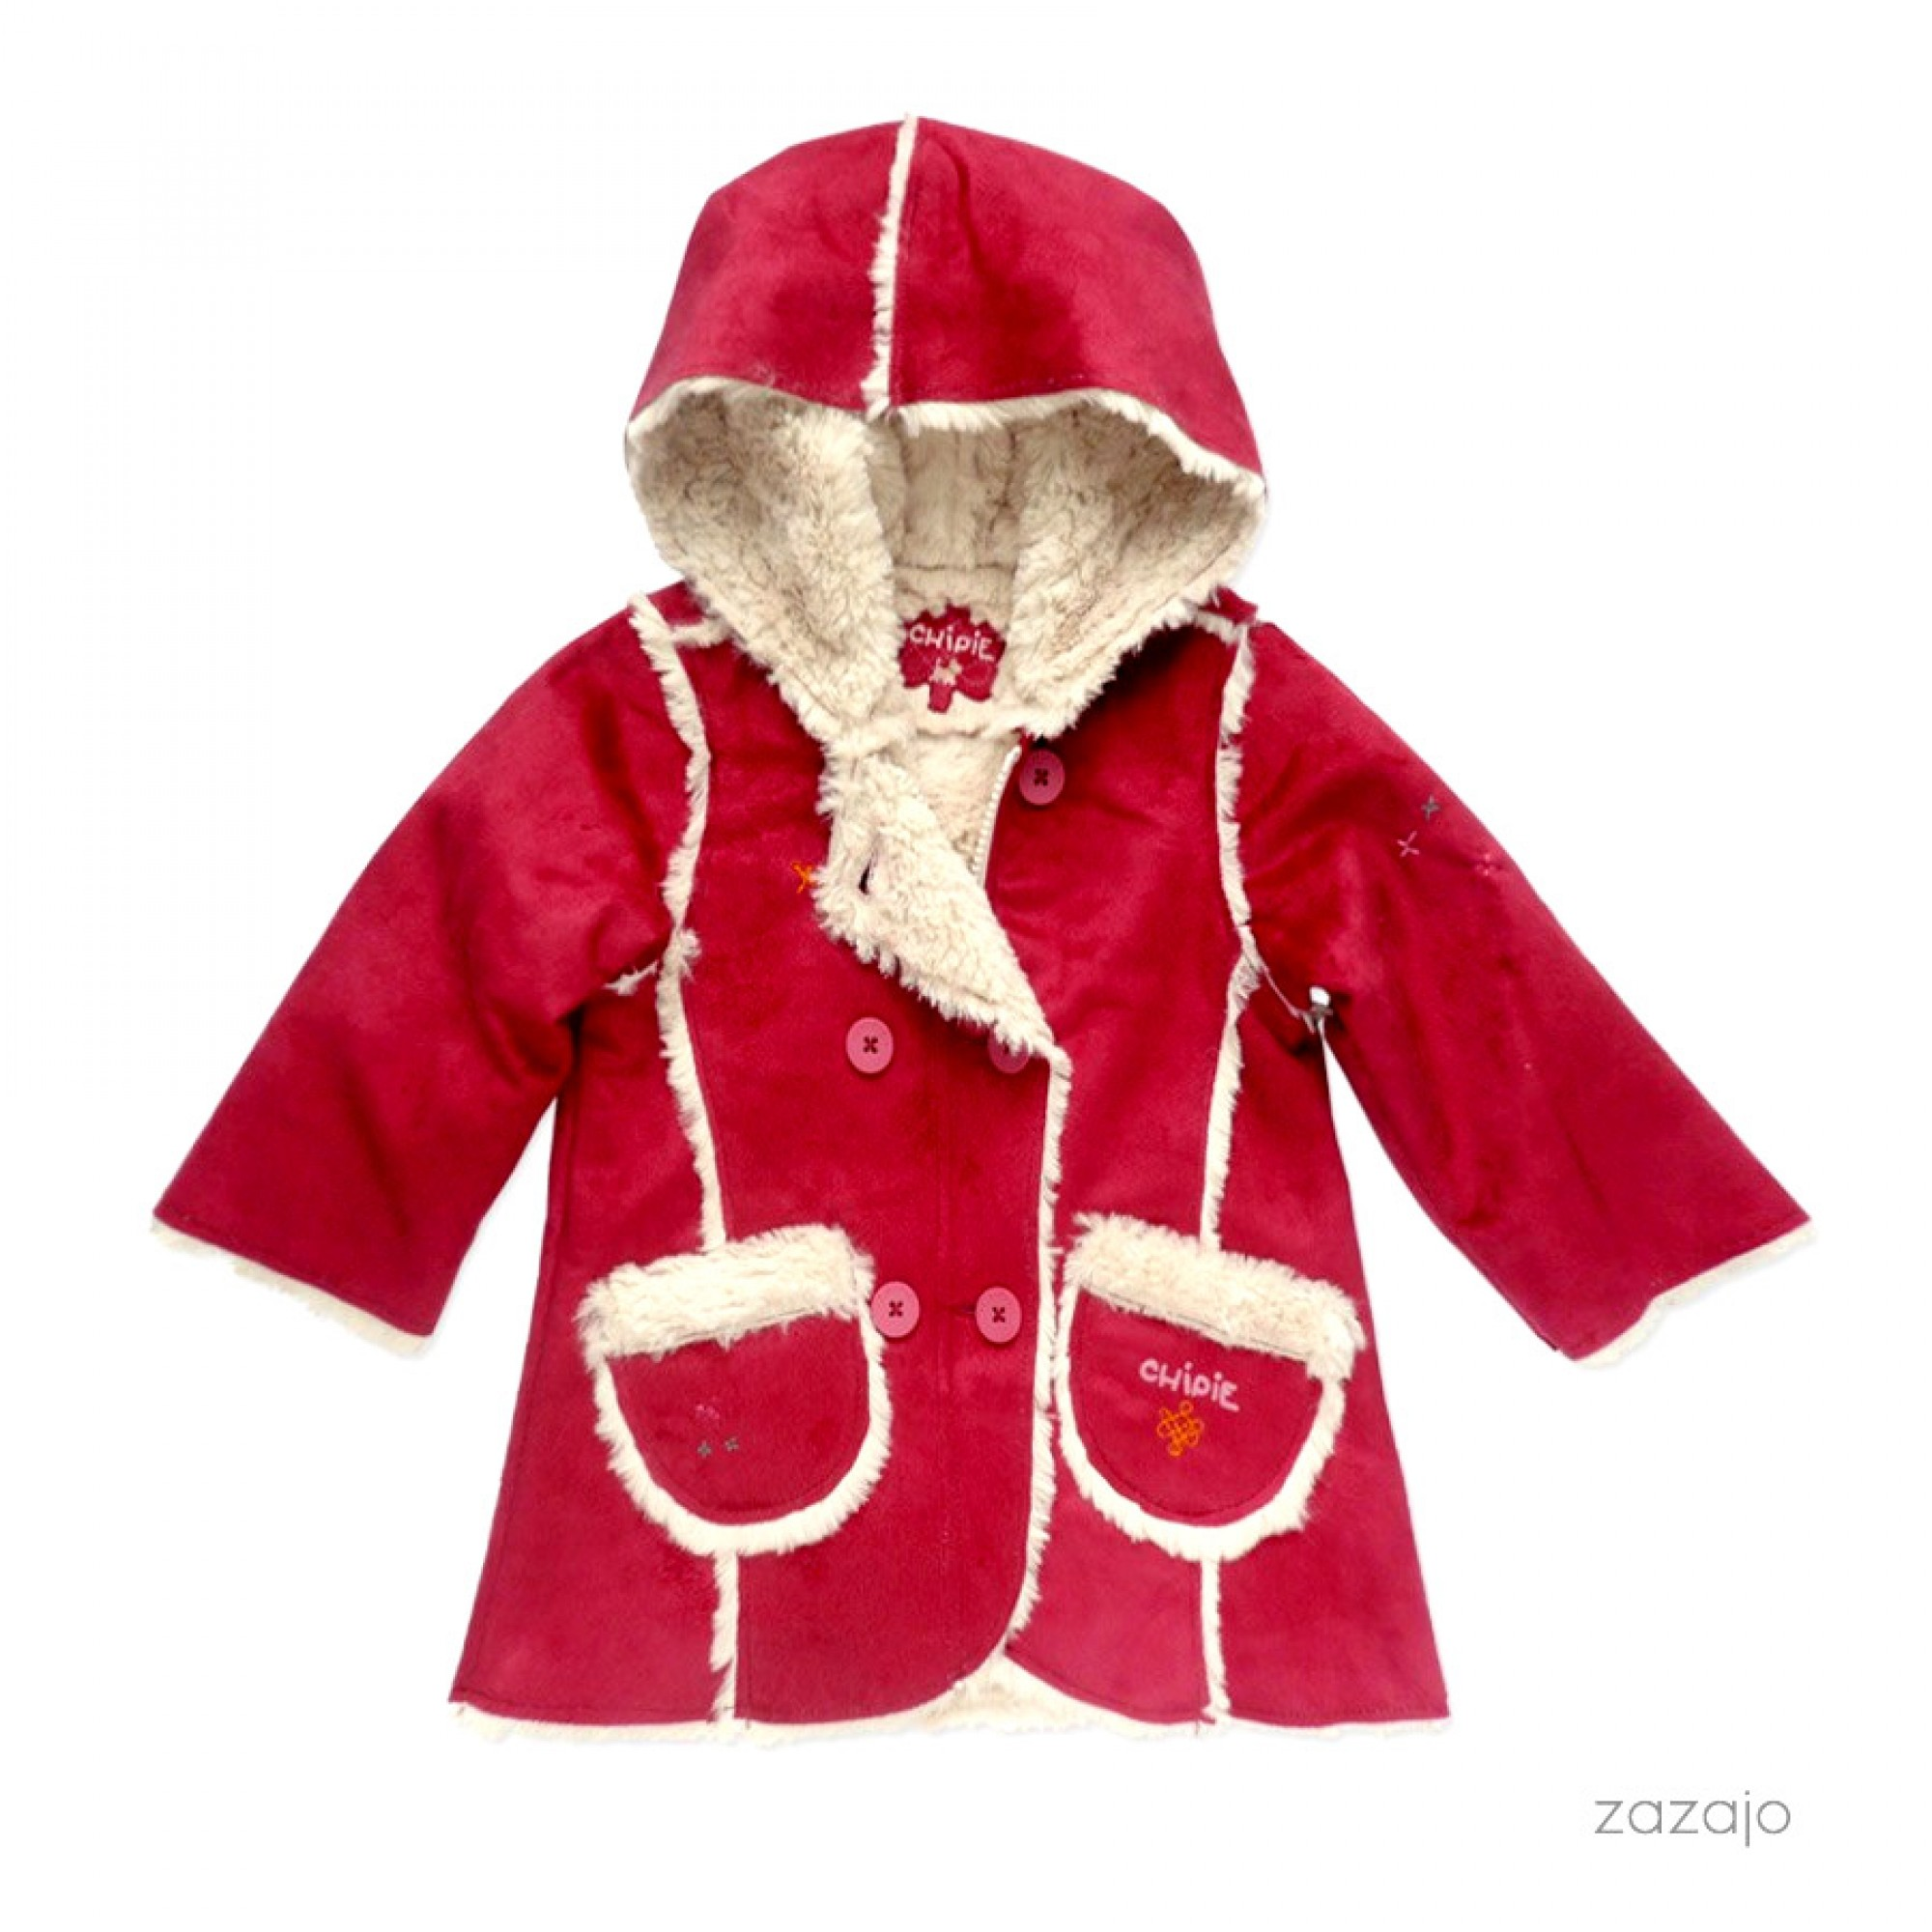 winter boots for babies 2015 10 15 Cute Baby Winter Jackets 2015 15 Cute Baby Winter Jackets 2015 winter boots for babies 2015 101